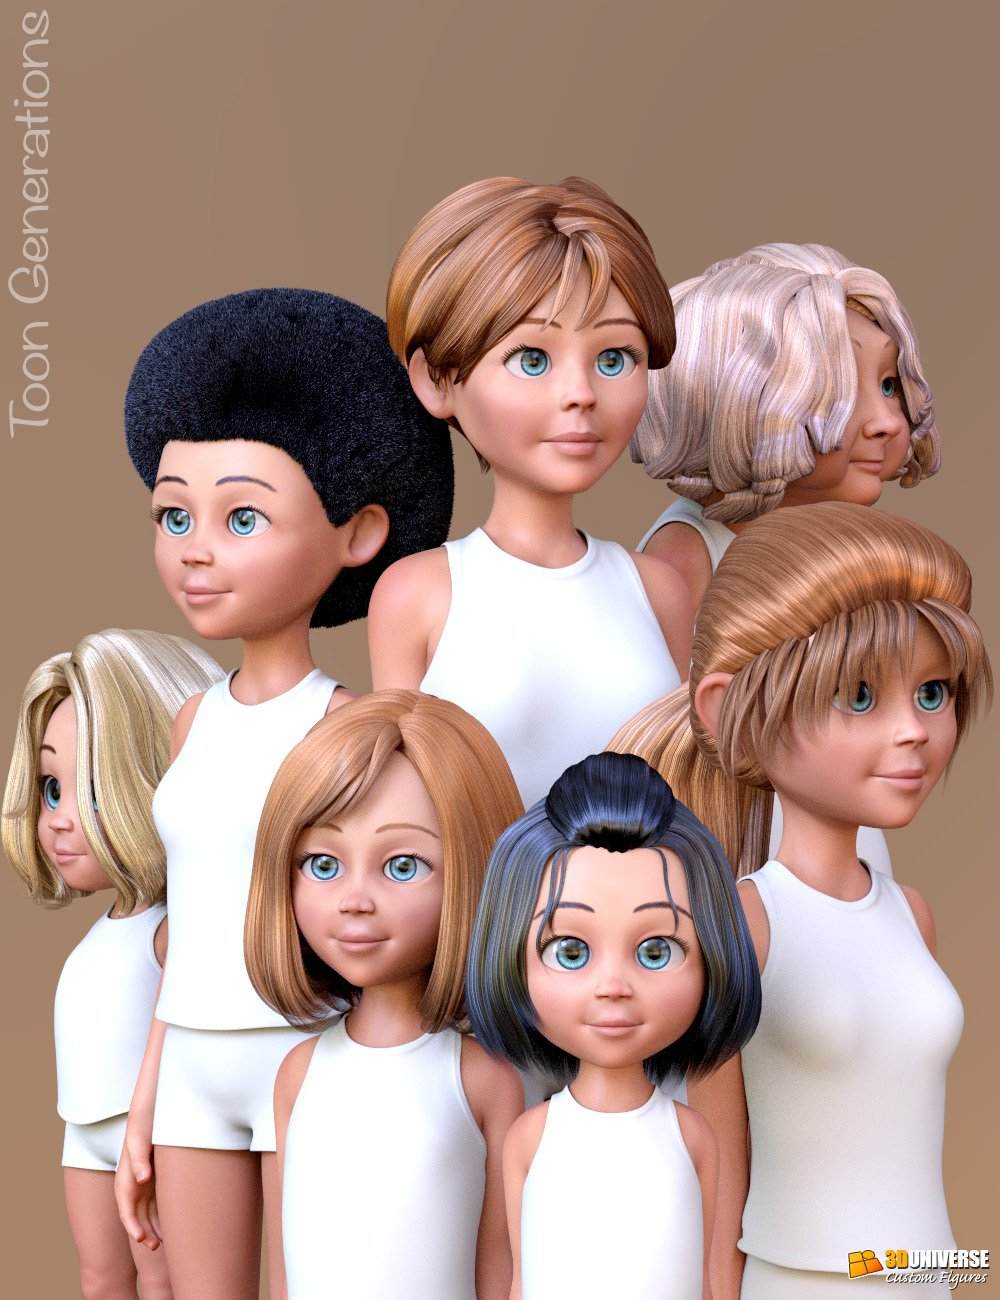 Toon Generations Hair for Genesis 8 Female(s) by: 3D Universe, 3D Models by Daz 3D